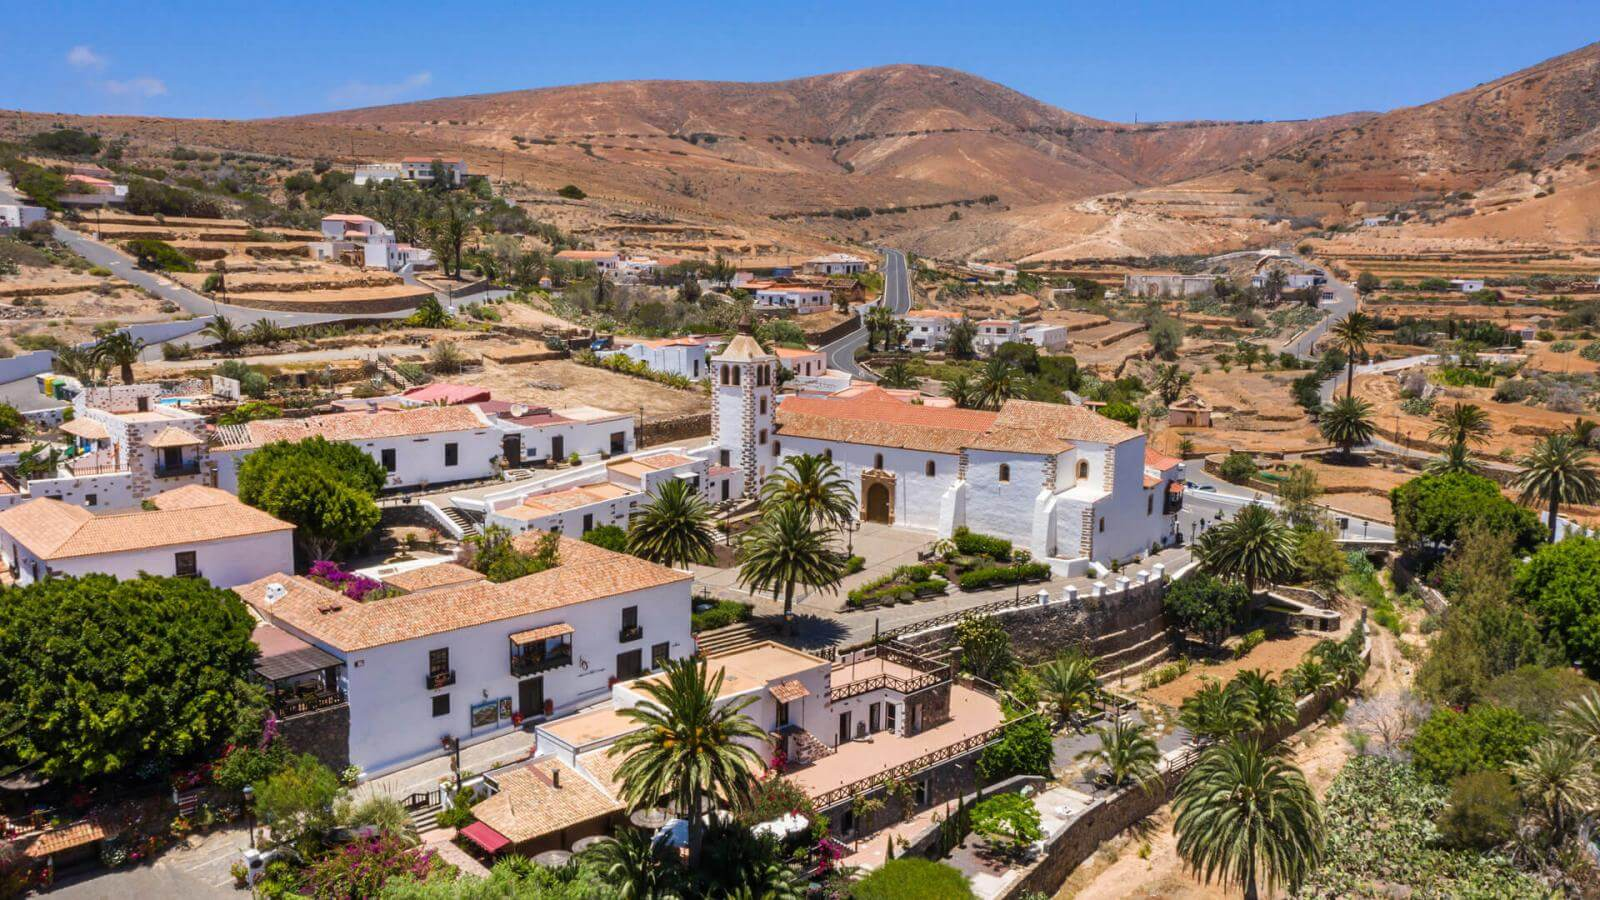 Betancuria Old Town | Hello Canary Islands